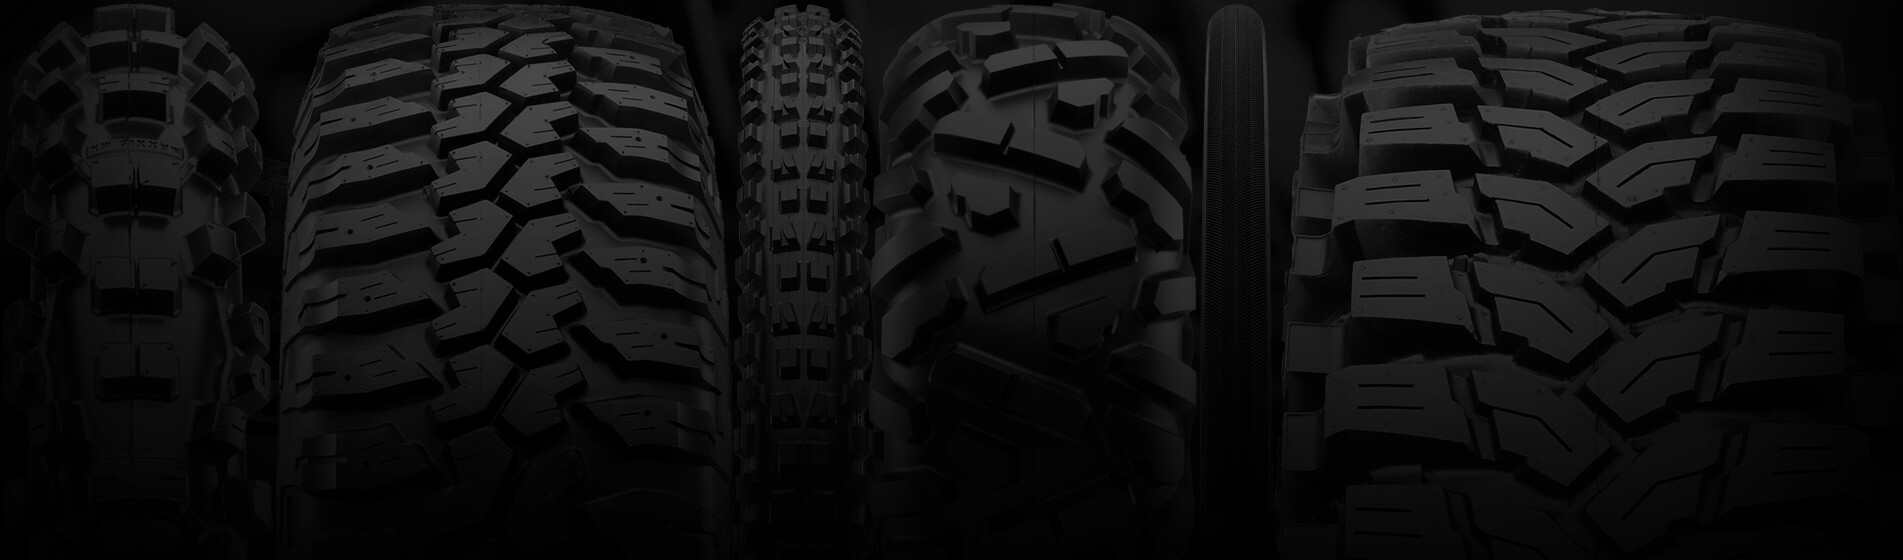 Close-up of five tires from various categories